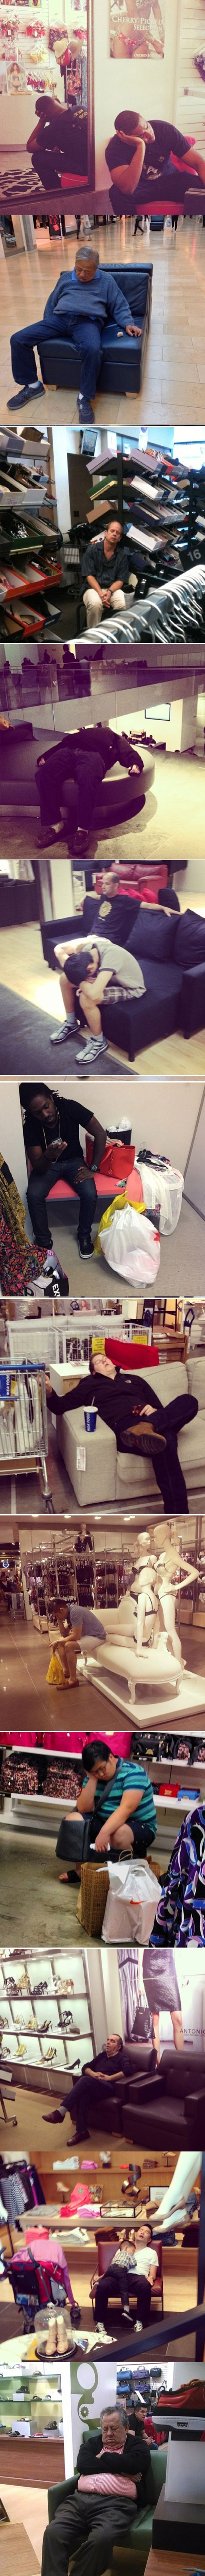 Shopping is hard